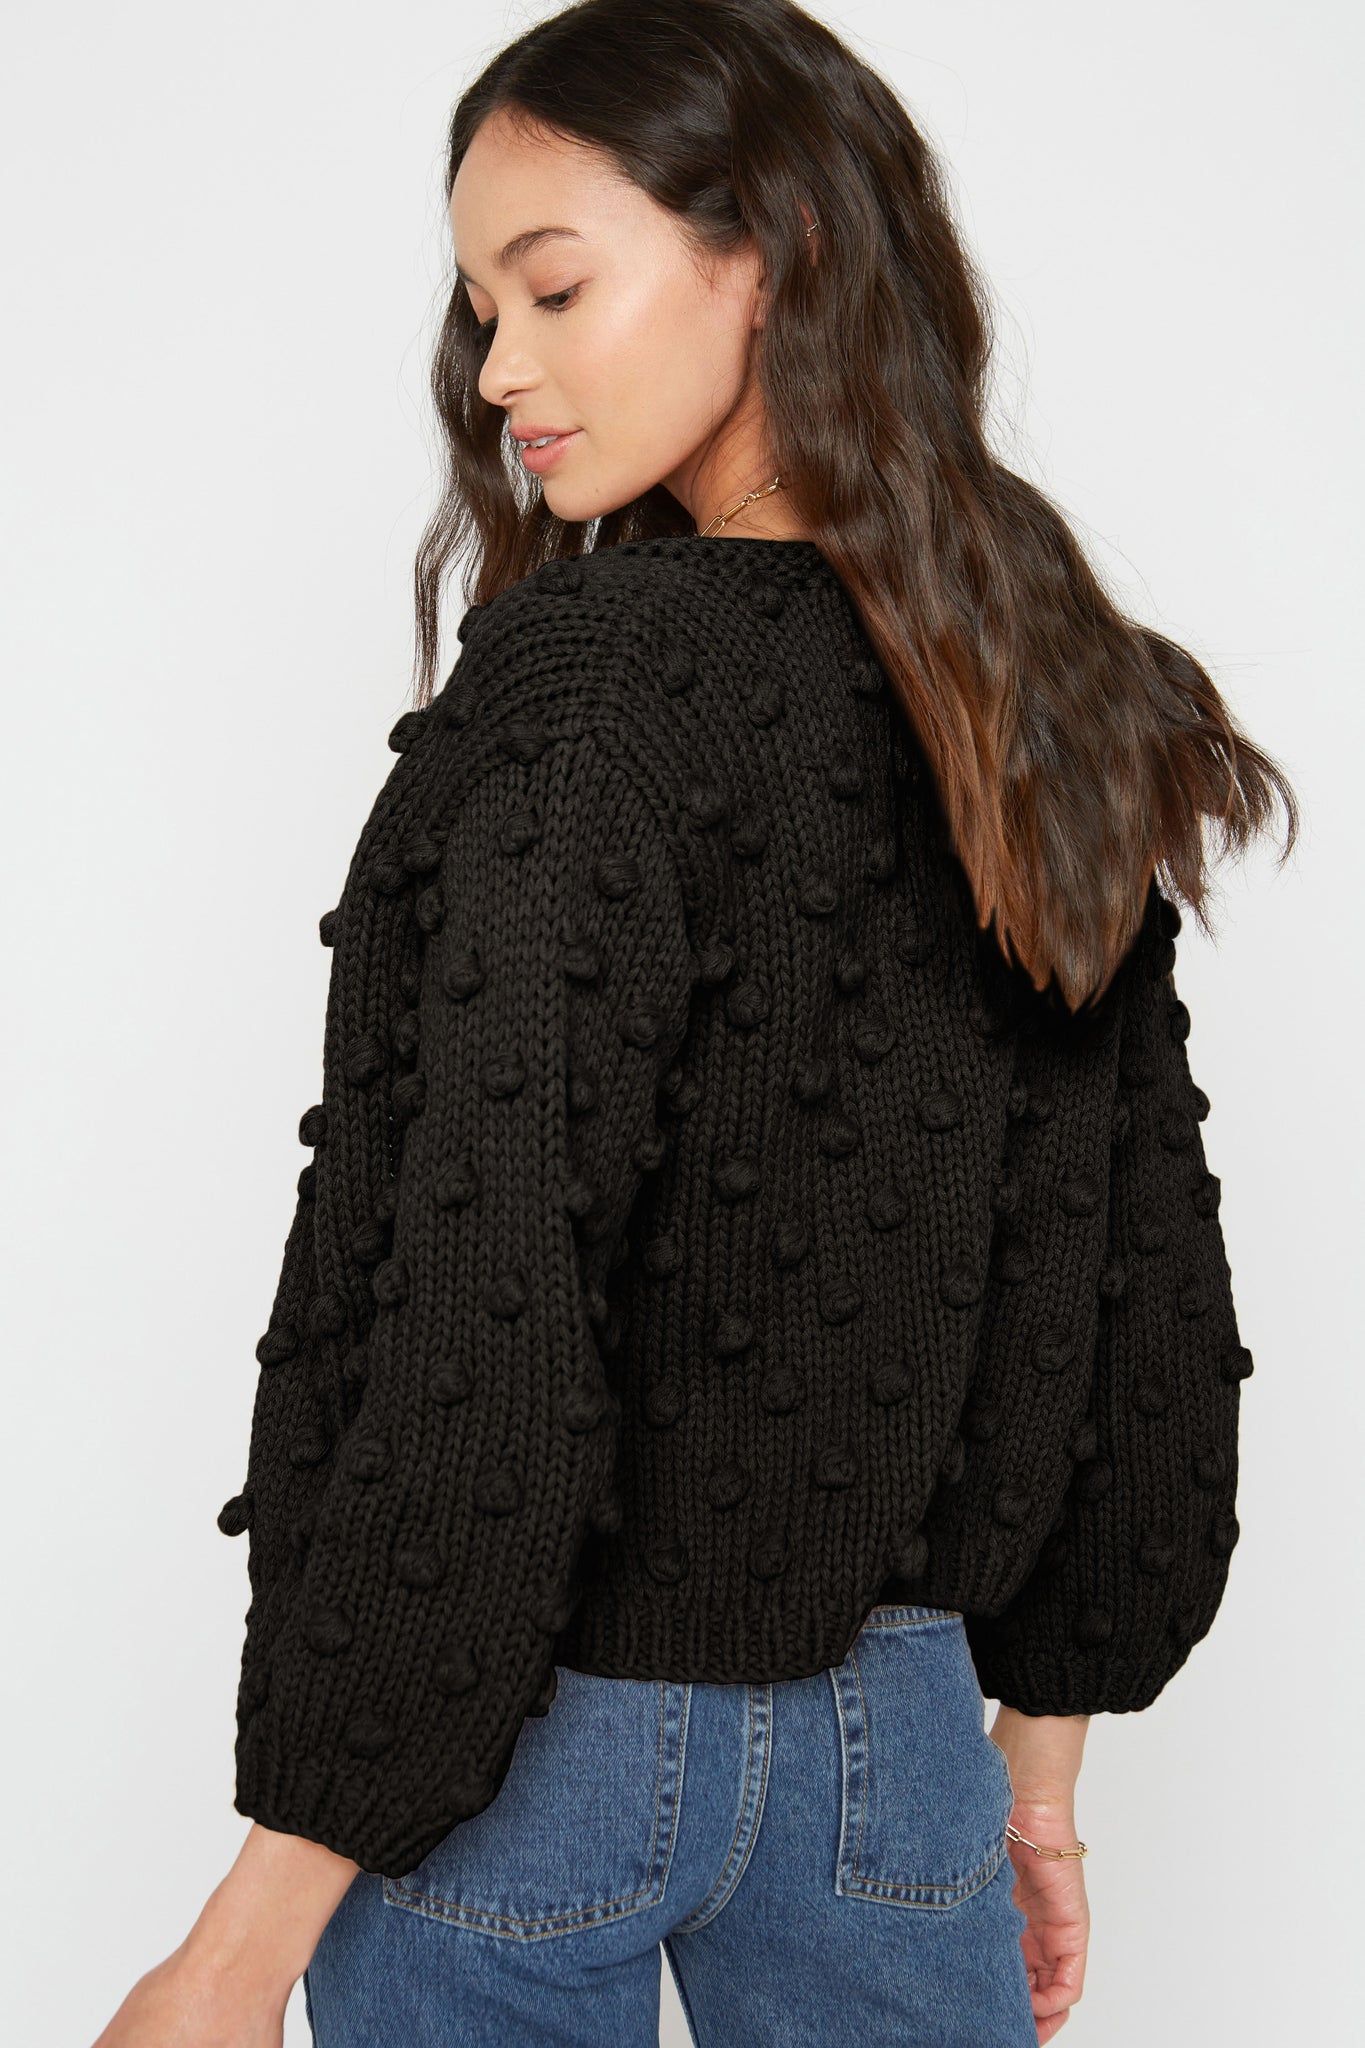 Rose Cardigan - Black